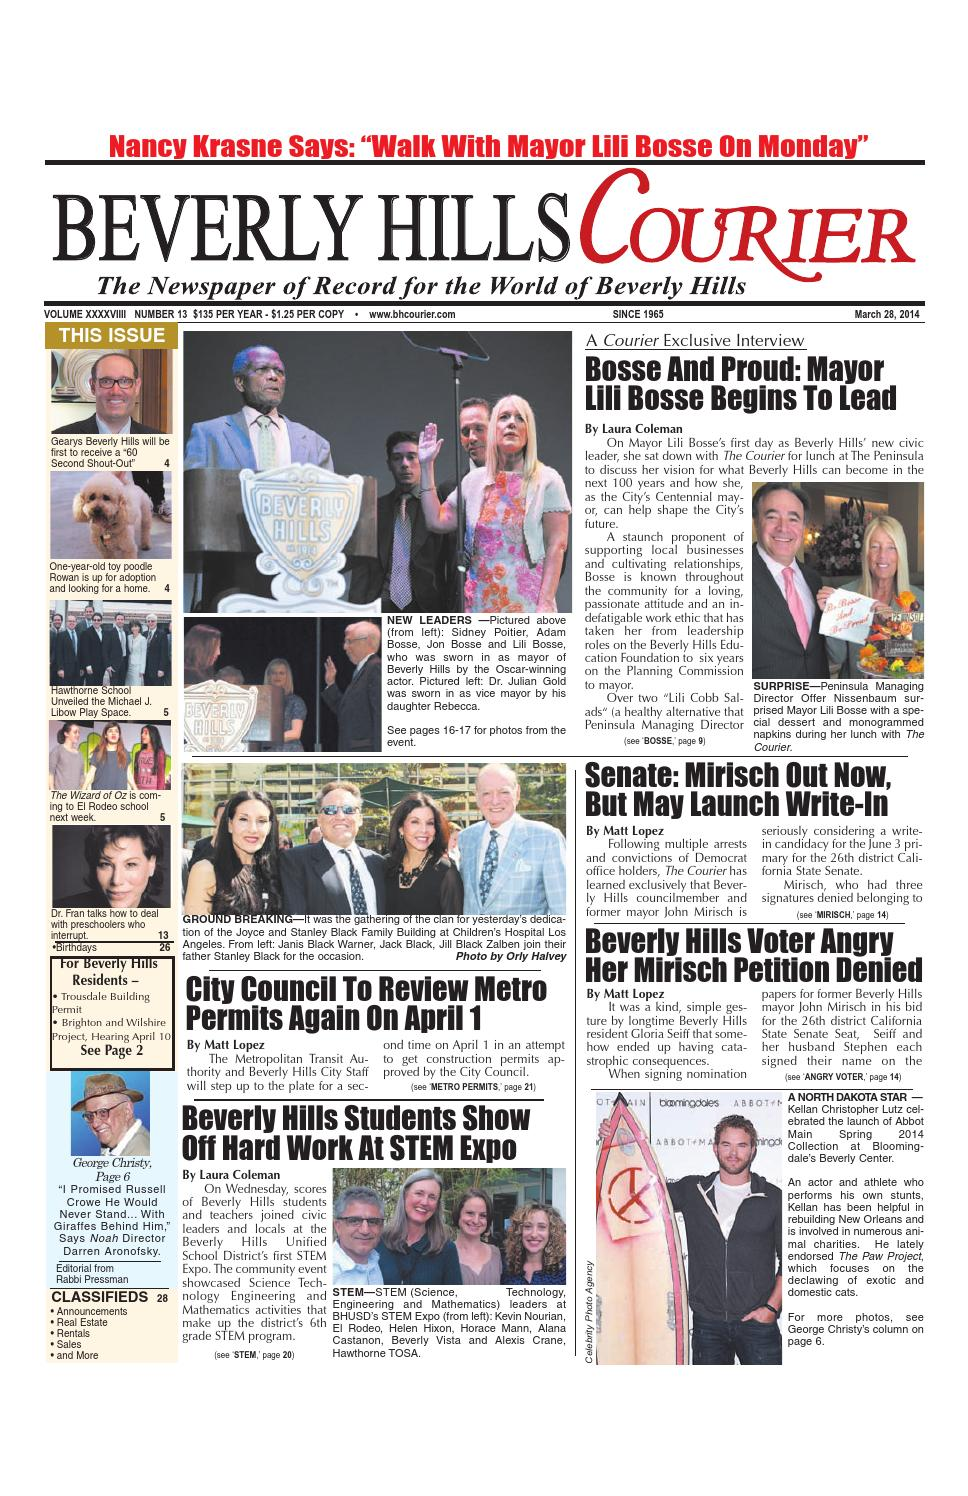 BHCourier 03-28-2014 E-edition by The Beverly Hills Courier - issuu